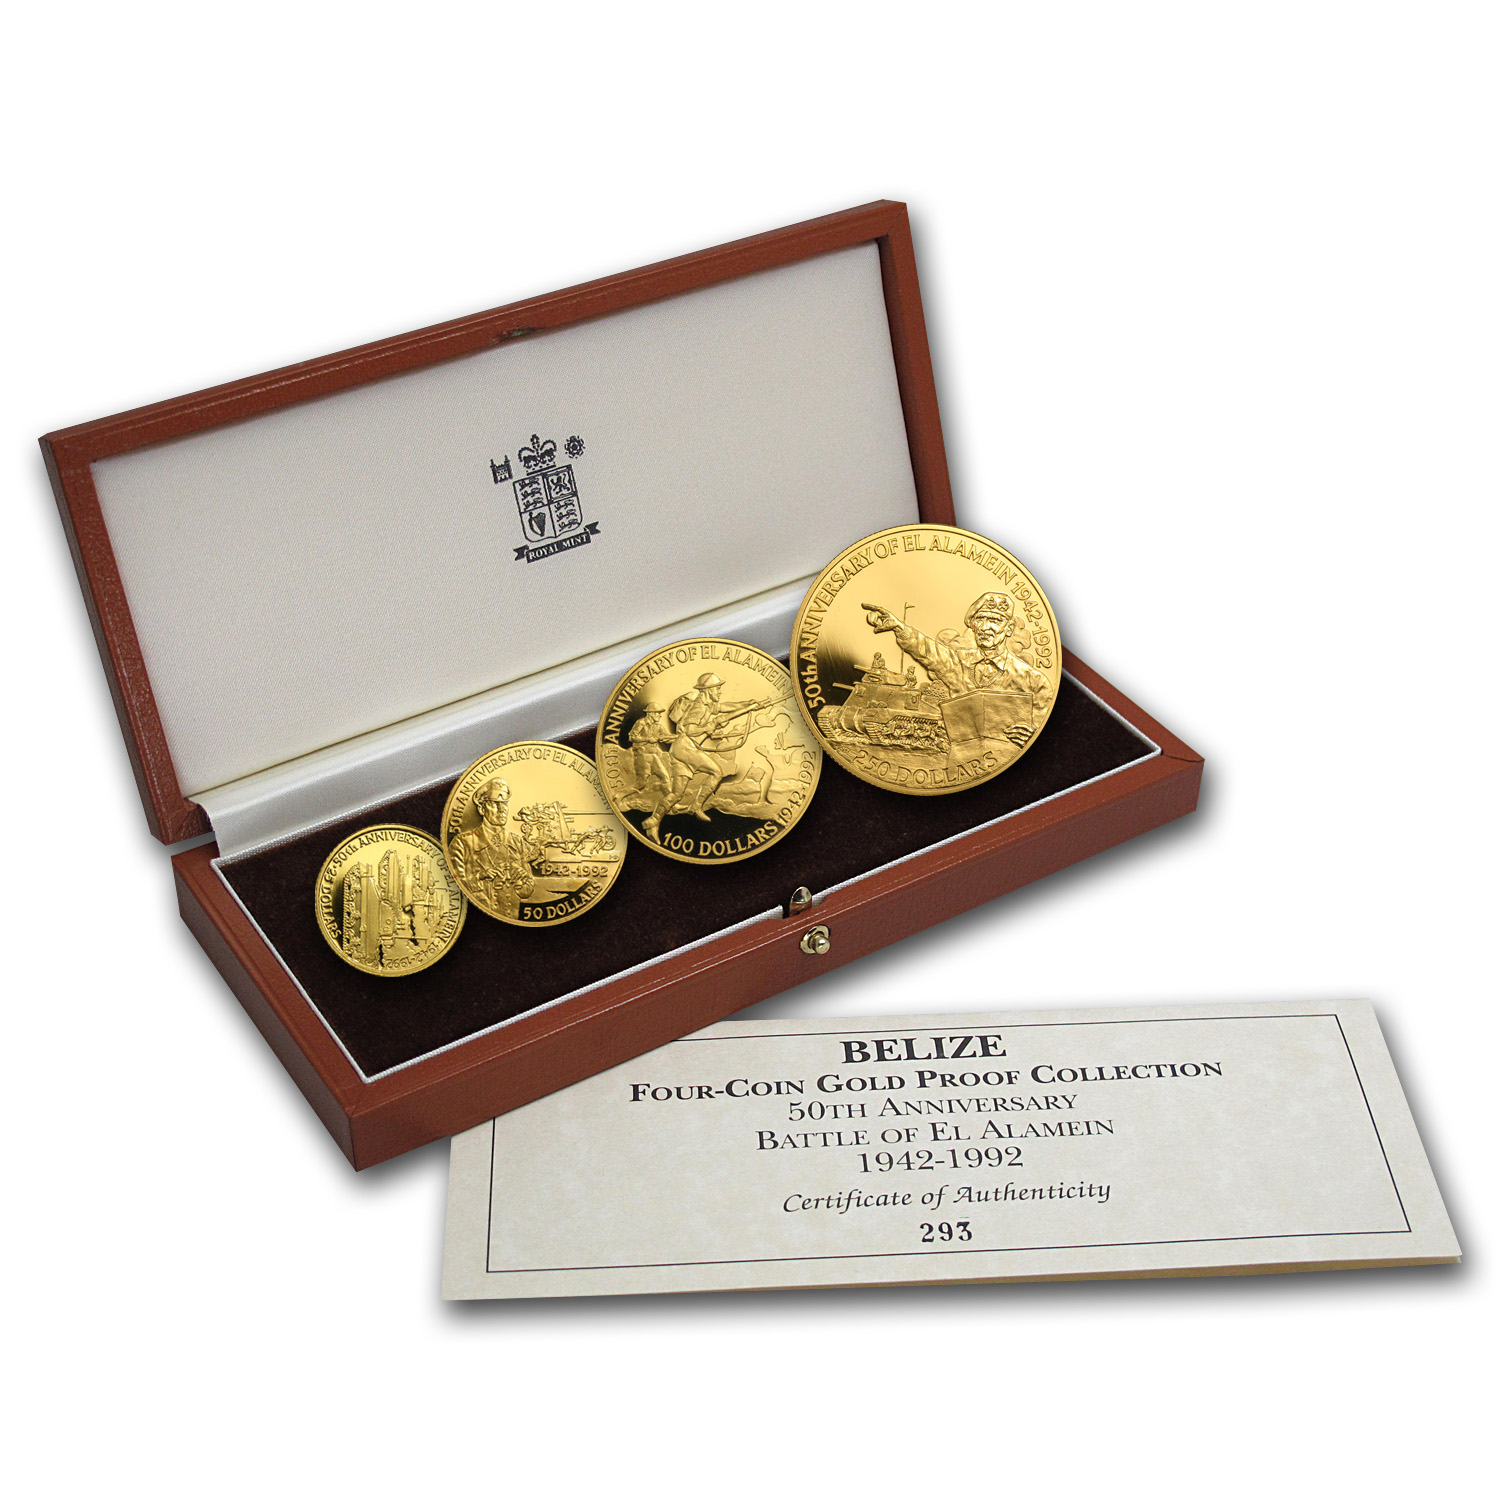 Belize 1992 Four Coin Gold Proof Set Battle of El Alamein